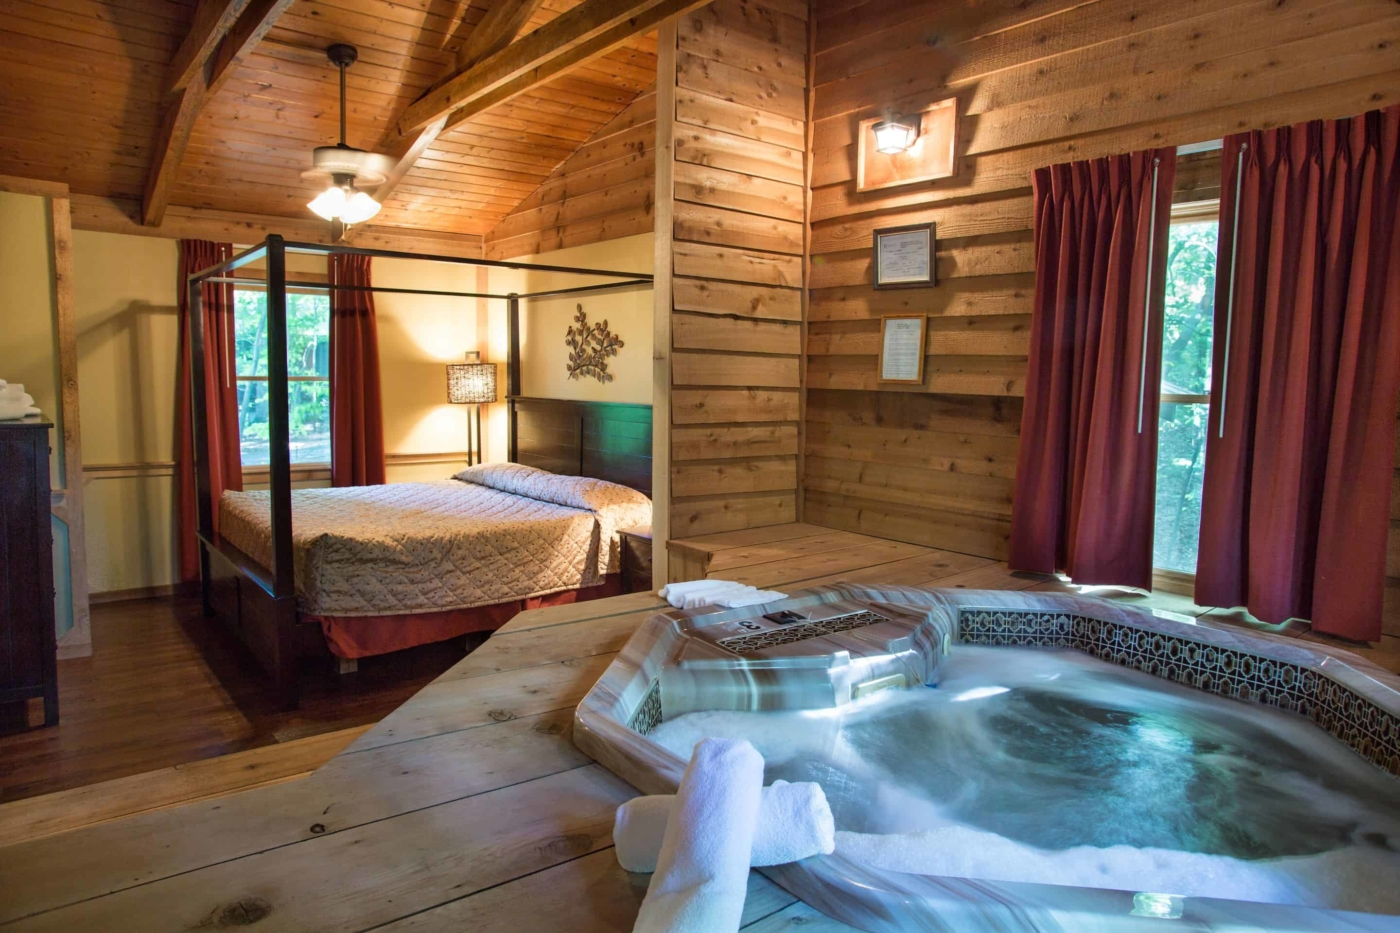 cabins in dahlonega - all with hot tub & fireplace at forrest hills